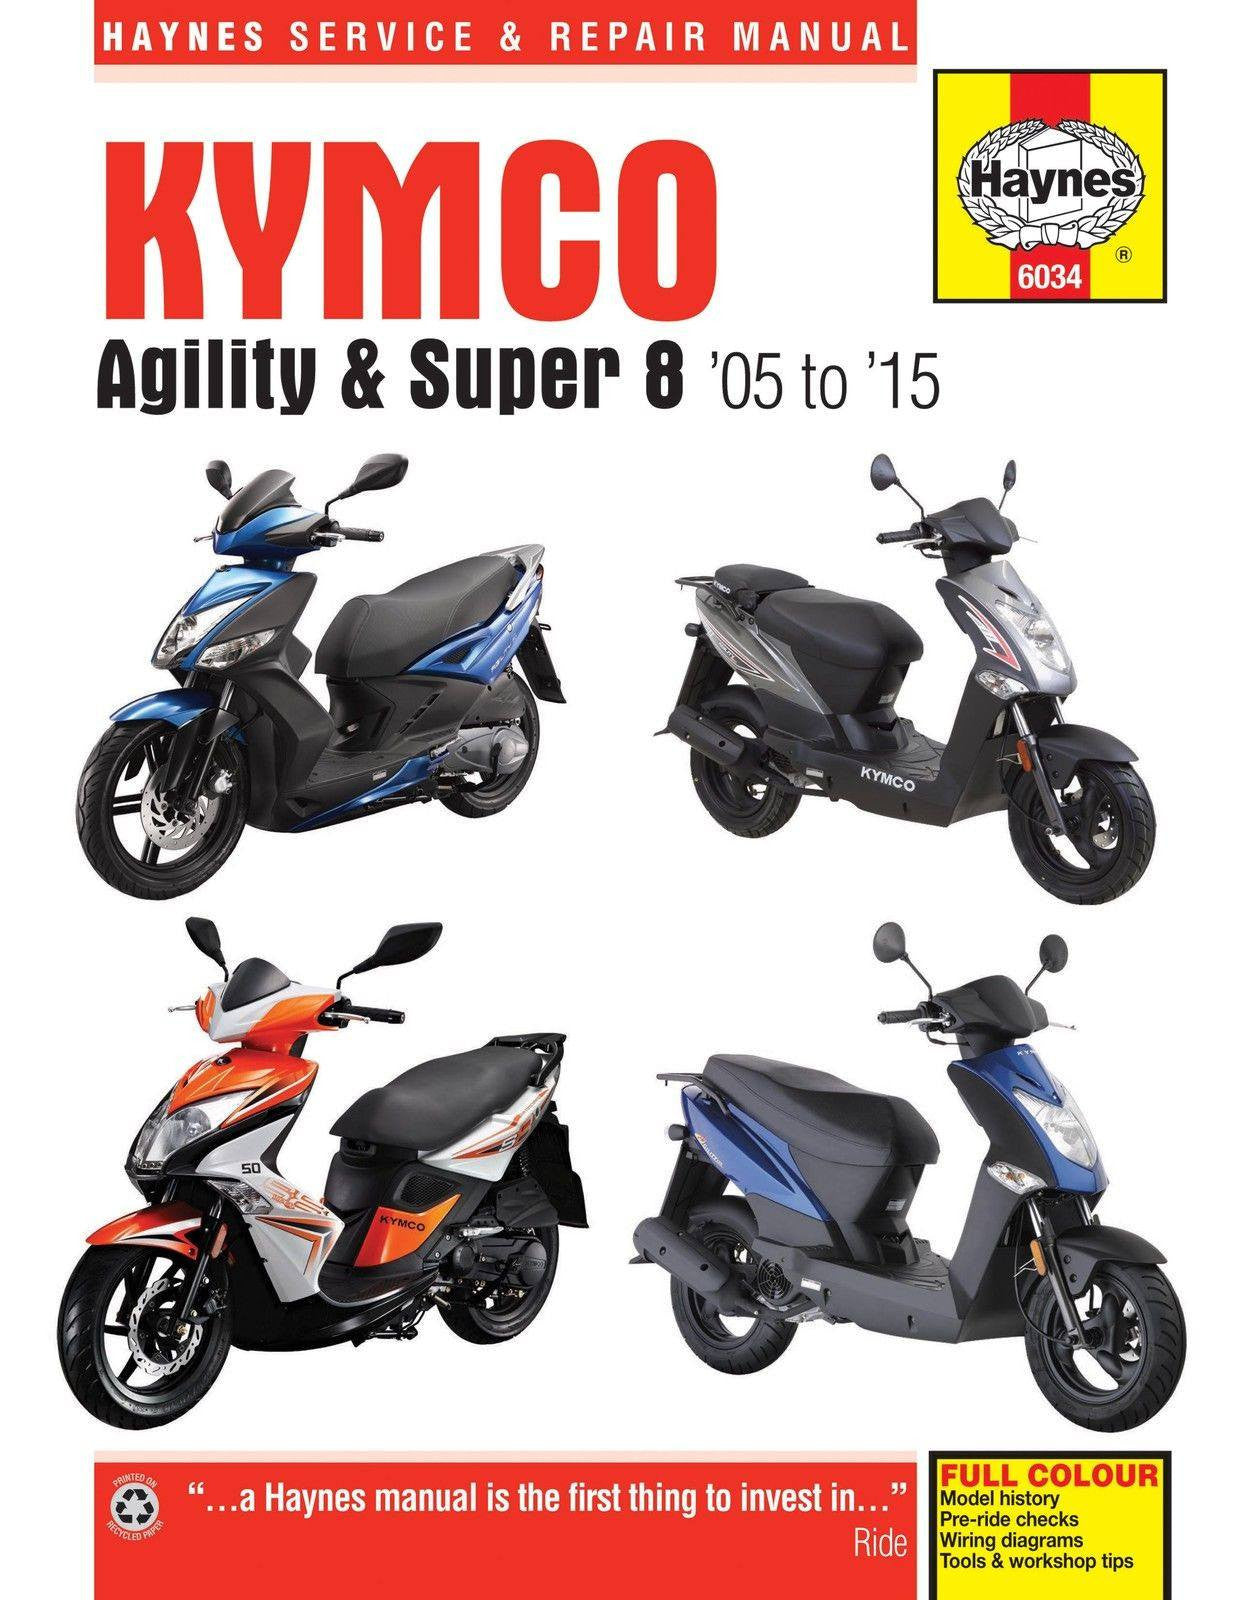 haynes scooter manual 4768 chinese taiwanese 50cc 200cc vmc rh vmcchineseparts com haynes chinese scooter service & repair manual 4768 download haynes chinese scooter service & repair manual 4768 download